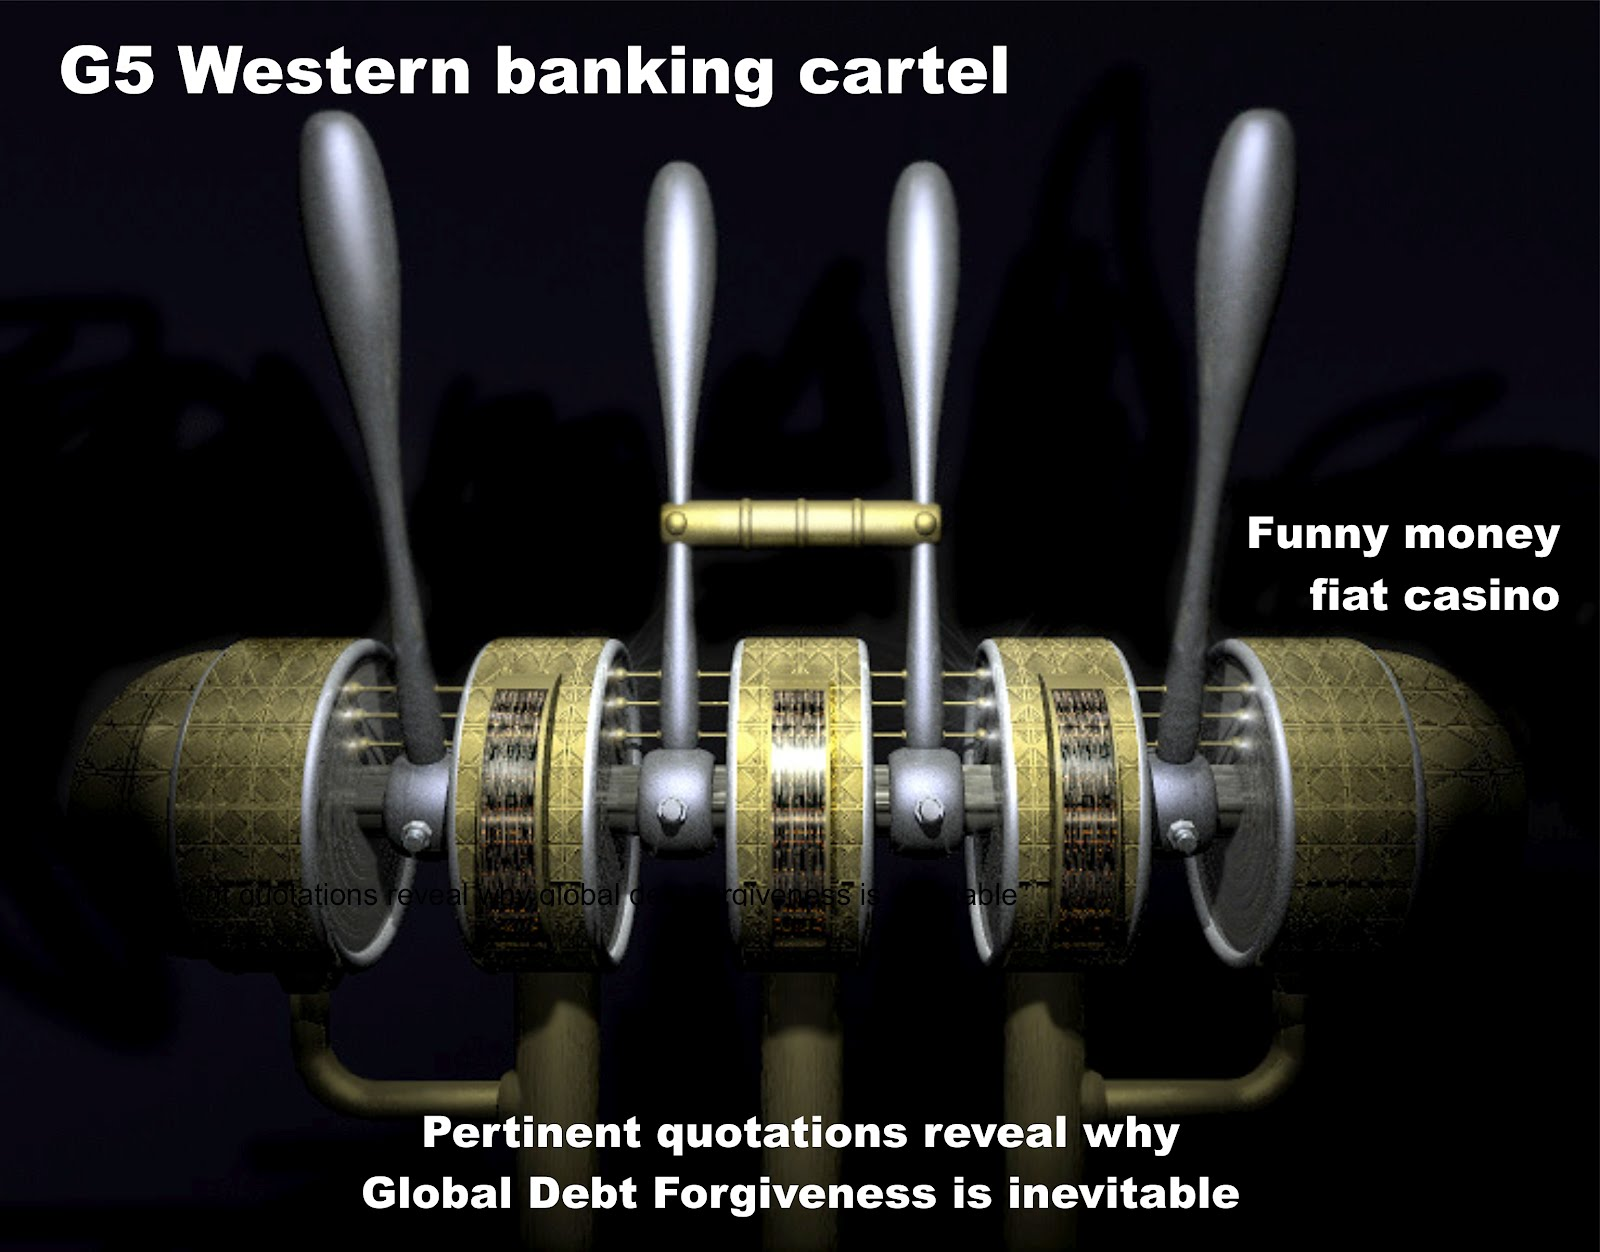 Universal debt forgiveness and the imminent global debt jubilee  G5%2BWestern%2Bbanking%2Bcartel.%2BFunny%2Bmoney%2Bfiat%2Bcasino.